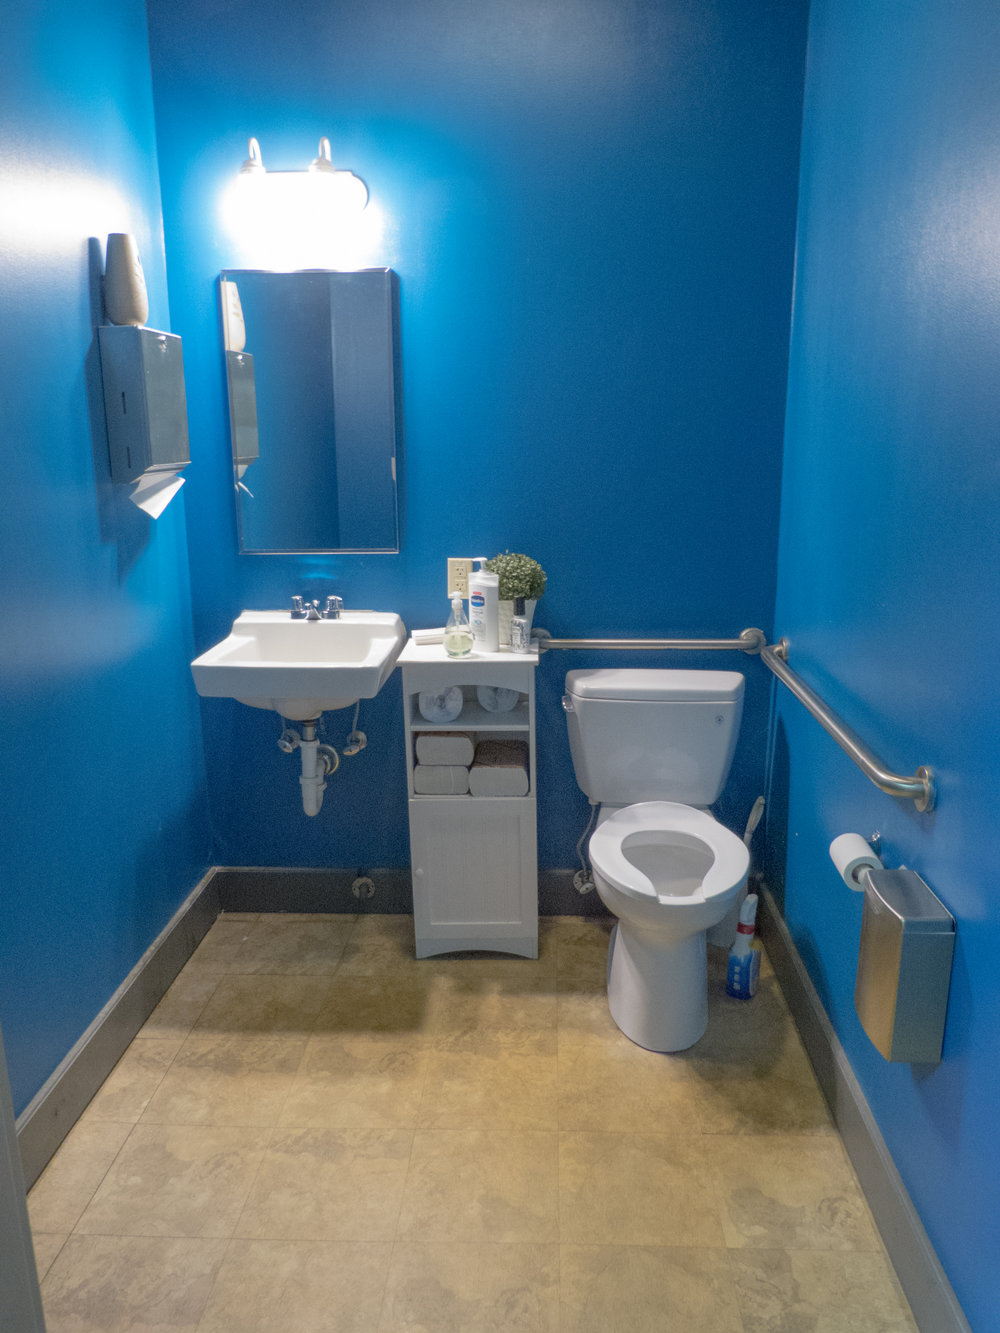 A bathroom.jpg